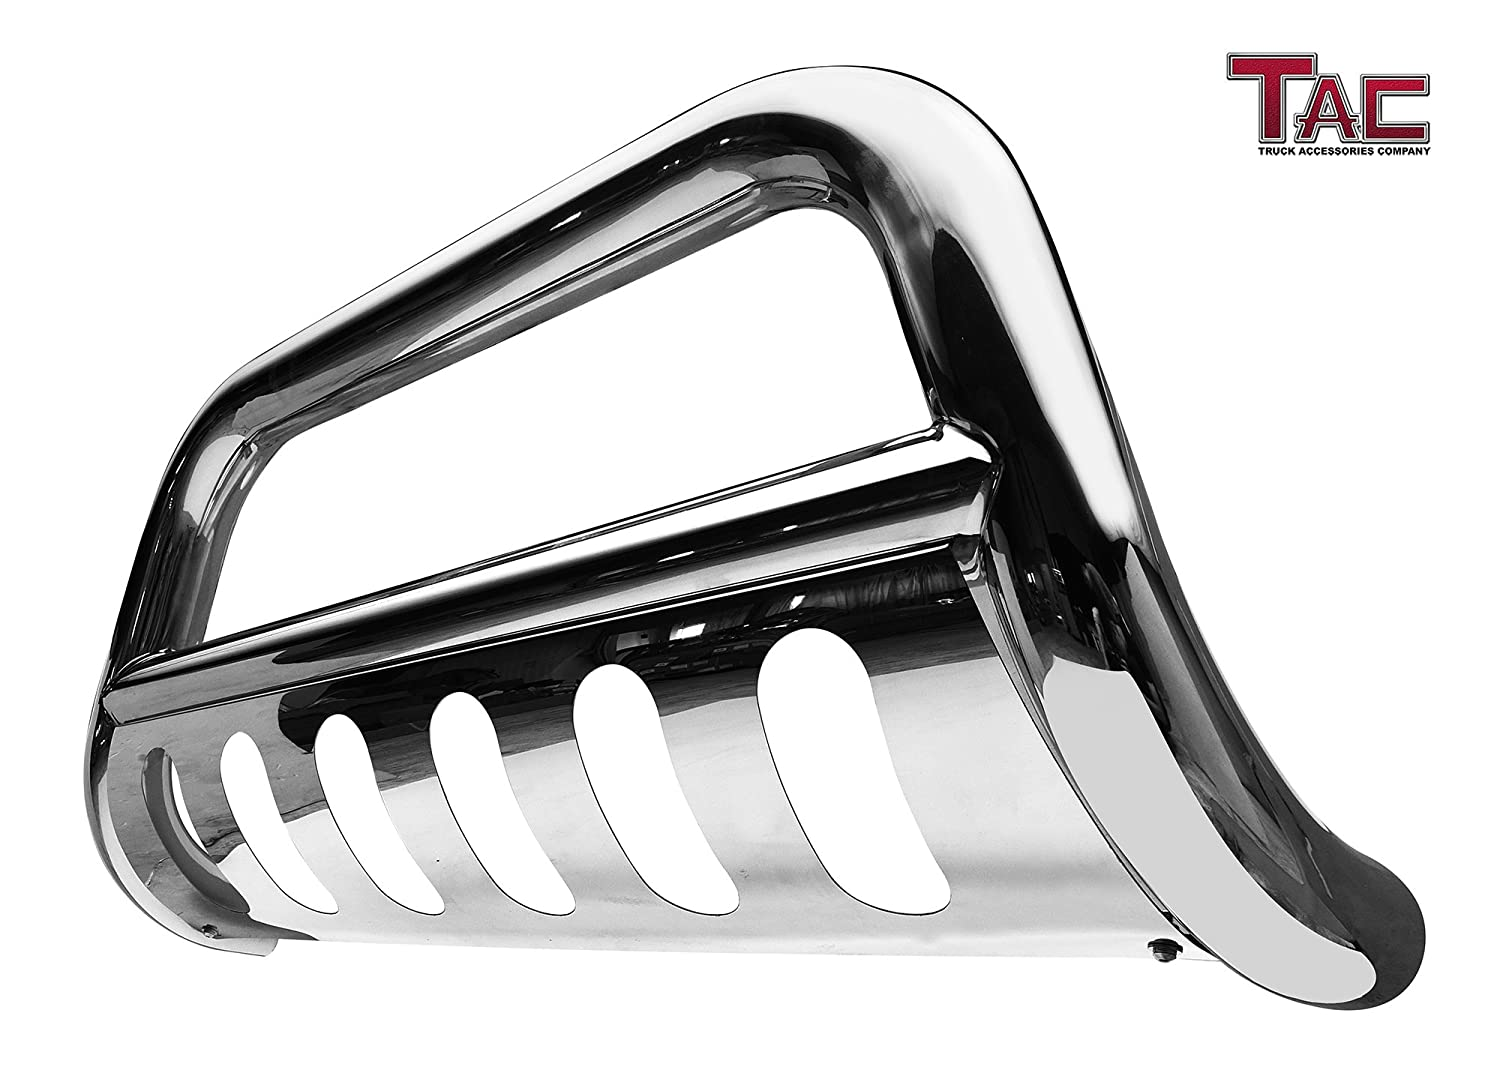 "TAC Bull Bar for 2009-2018 Dodge RAM 1500 (Excl. Rebel Trim/Incl. 2019 Ram 1500 Classic) Pickup Truck 3"" Stainless Steel Front Brush Bumper Guard Push Guard Off Road Automotive Exterior Accessories"